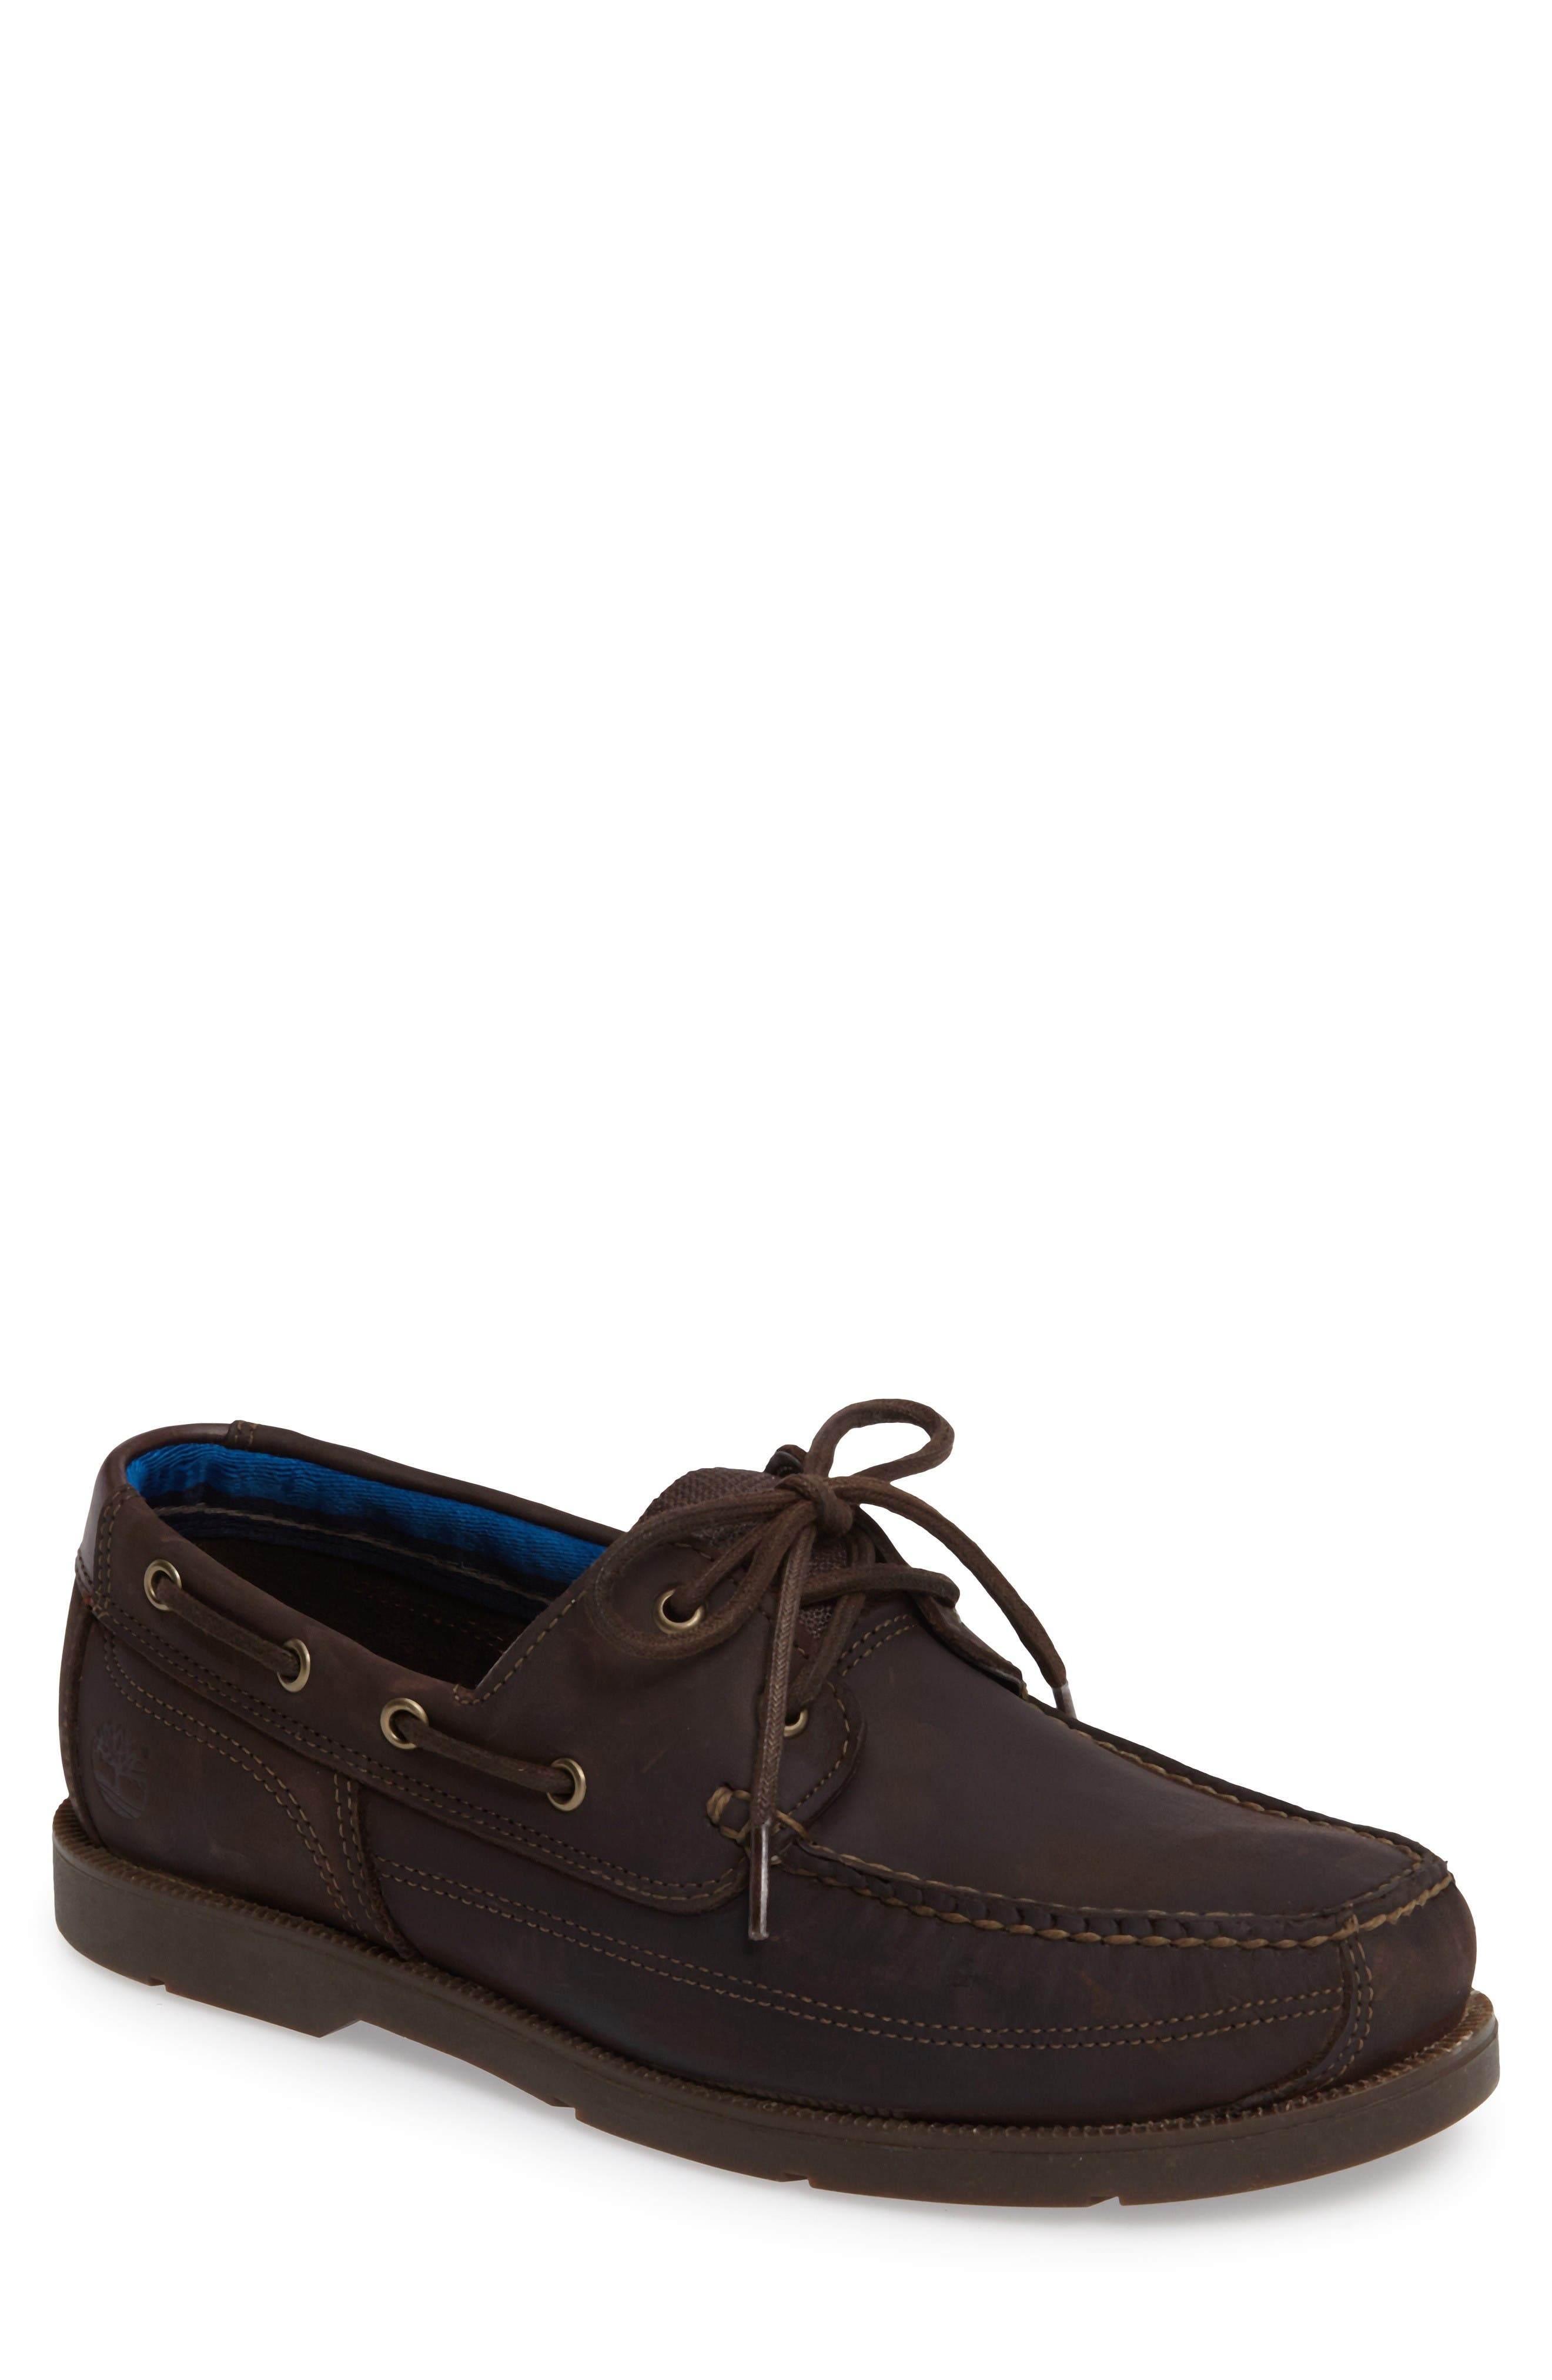 Timberland Piper Cove FG Boat Shoe (Men)